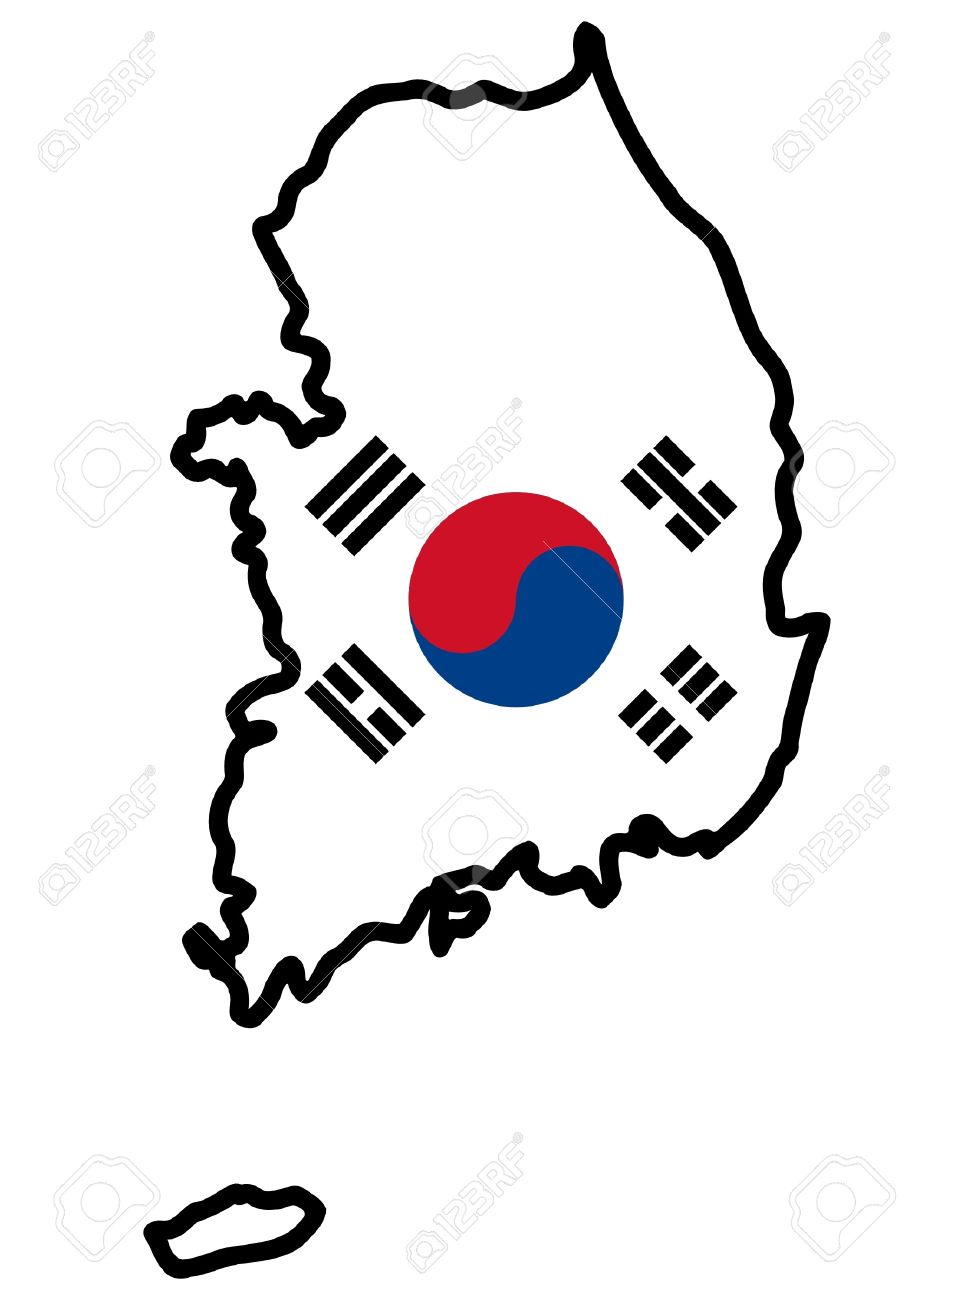 South korea clipart jpg library Collection of South korea clipart | Free download best South ... jpg library